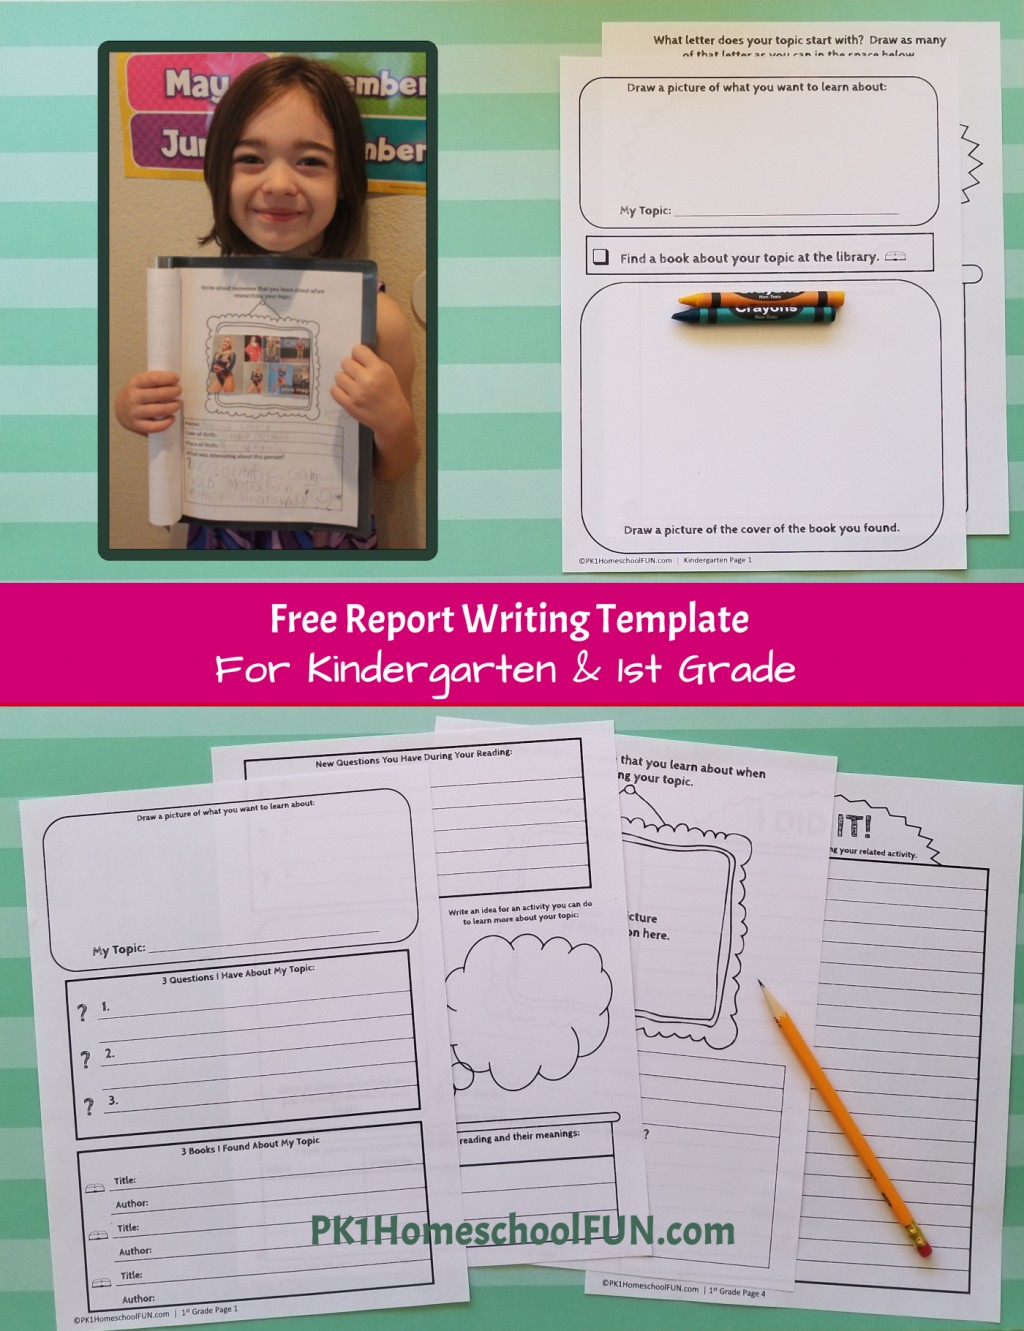 009 Free 1st Grade Writing Prompts Research Paper Template Help Me With My Stirring For Large